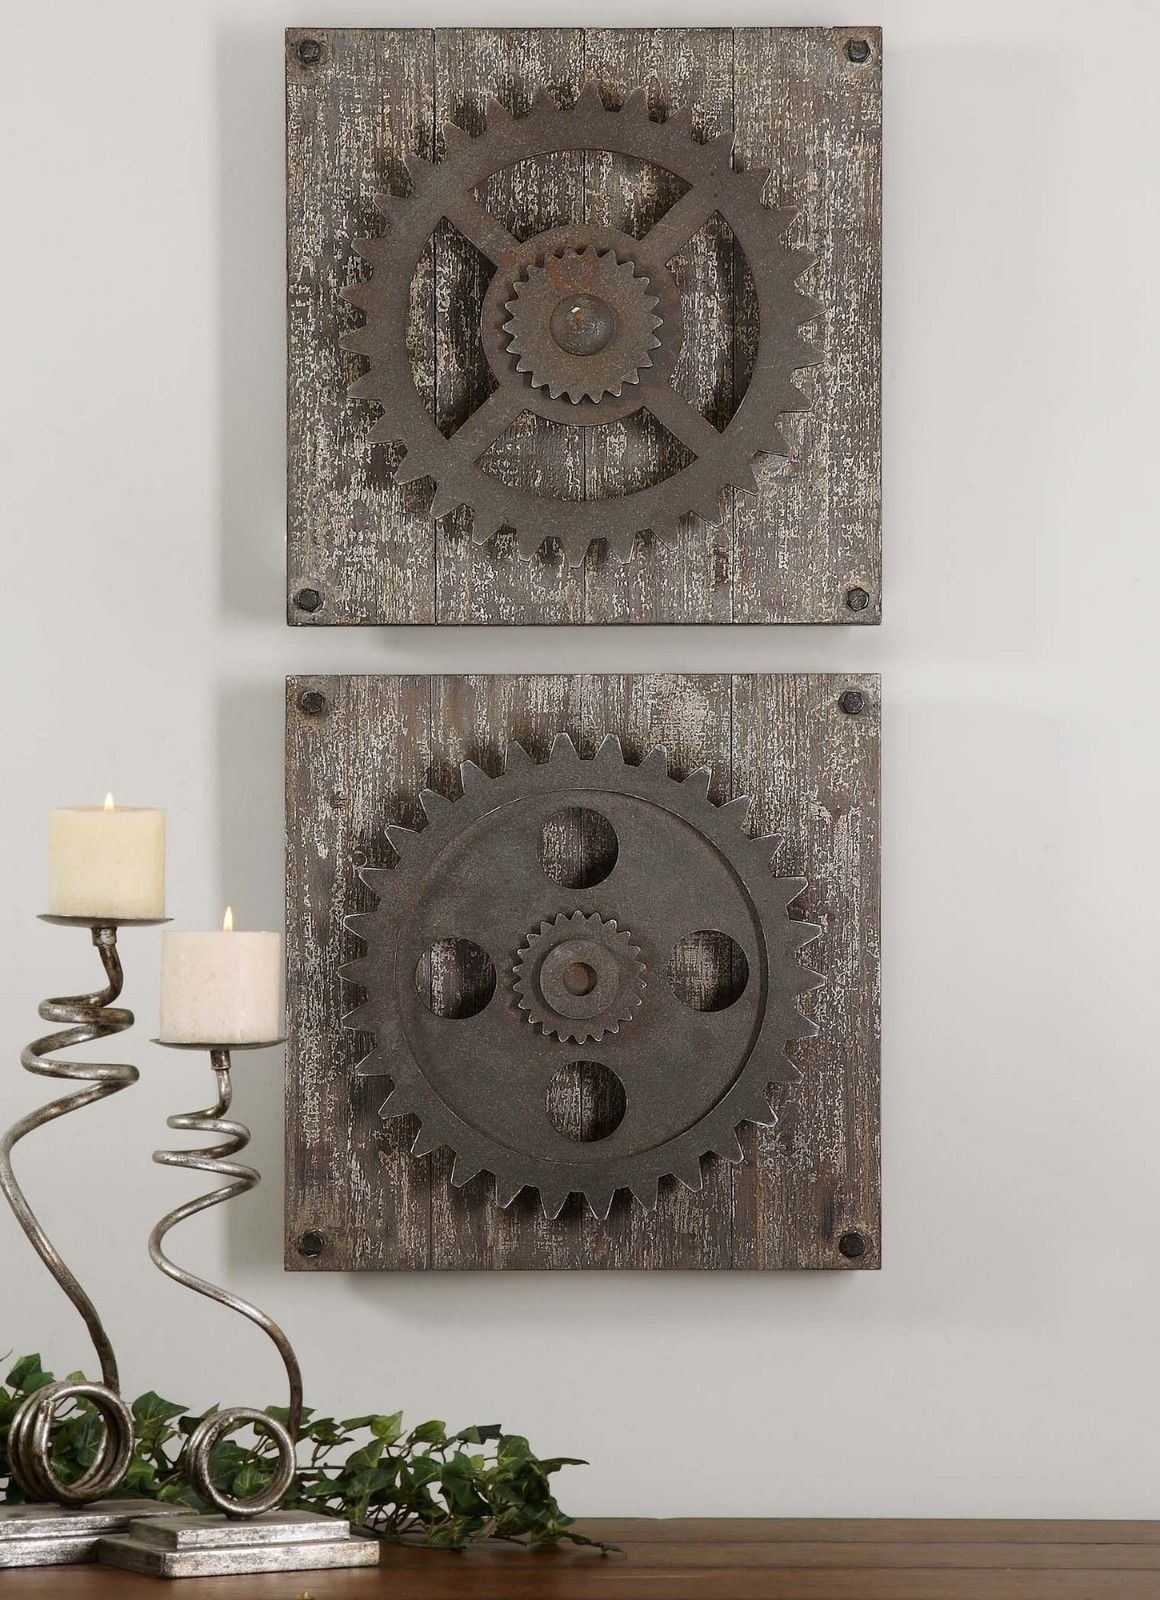 Urban Industrial Loft Steampunk Decor Rusty Gears Cogs 3D Wall Art Within Most Up To Date Steampunk Wall Art (View 19 of 20)